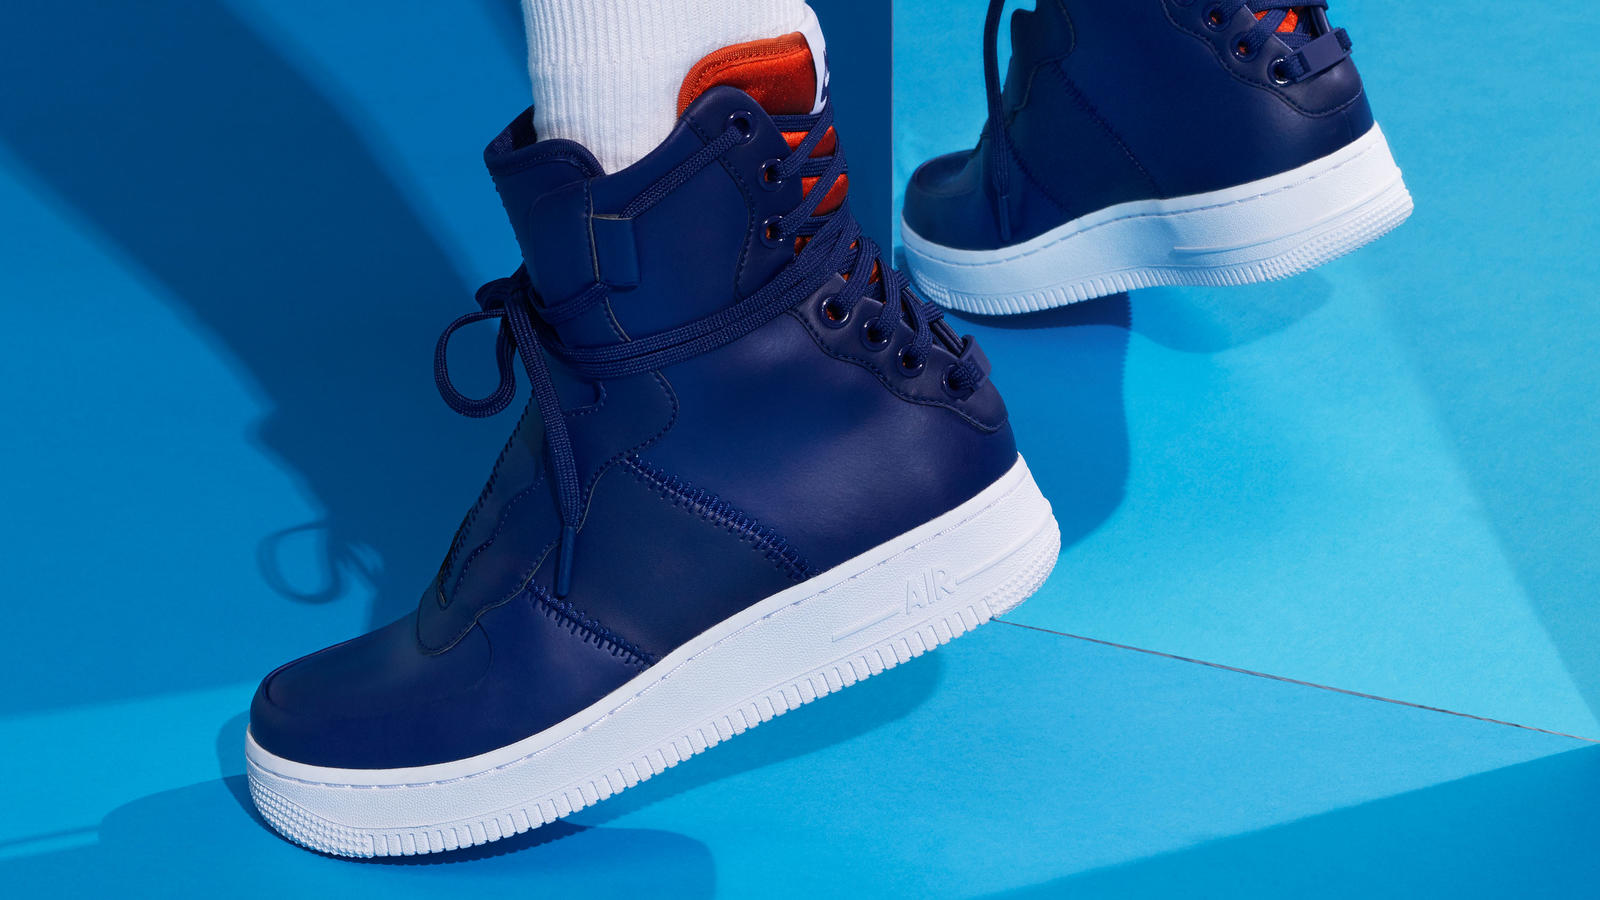 newest 9fa5c 537f1 From simple women s sizing, the Air Force 1s are being taken to the next  level through The 1 Reimagined. Female designers have taken the Air Force 1  DNA and ...